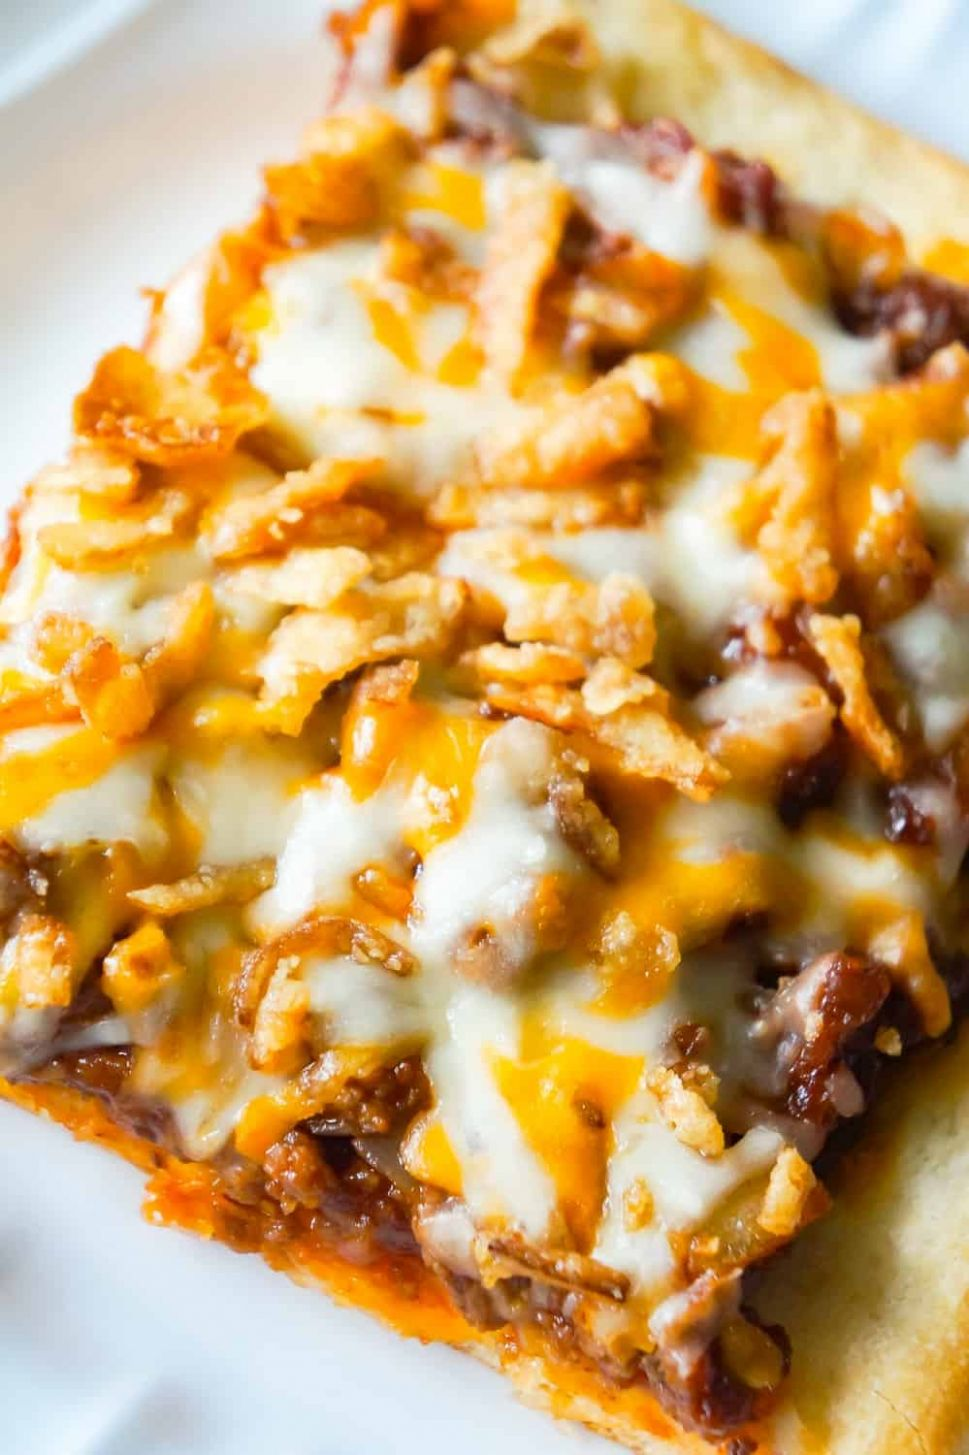 Sloppy Joe Pizza - This is Not Diet Food - Recipes With Pizza Dough And Ground Beef